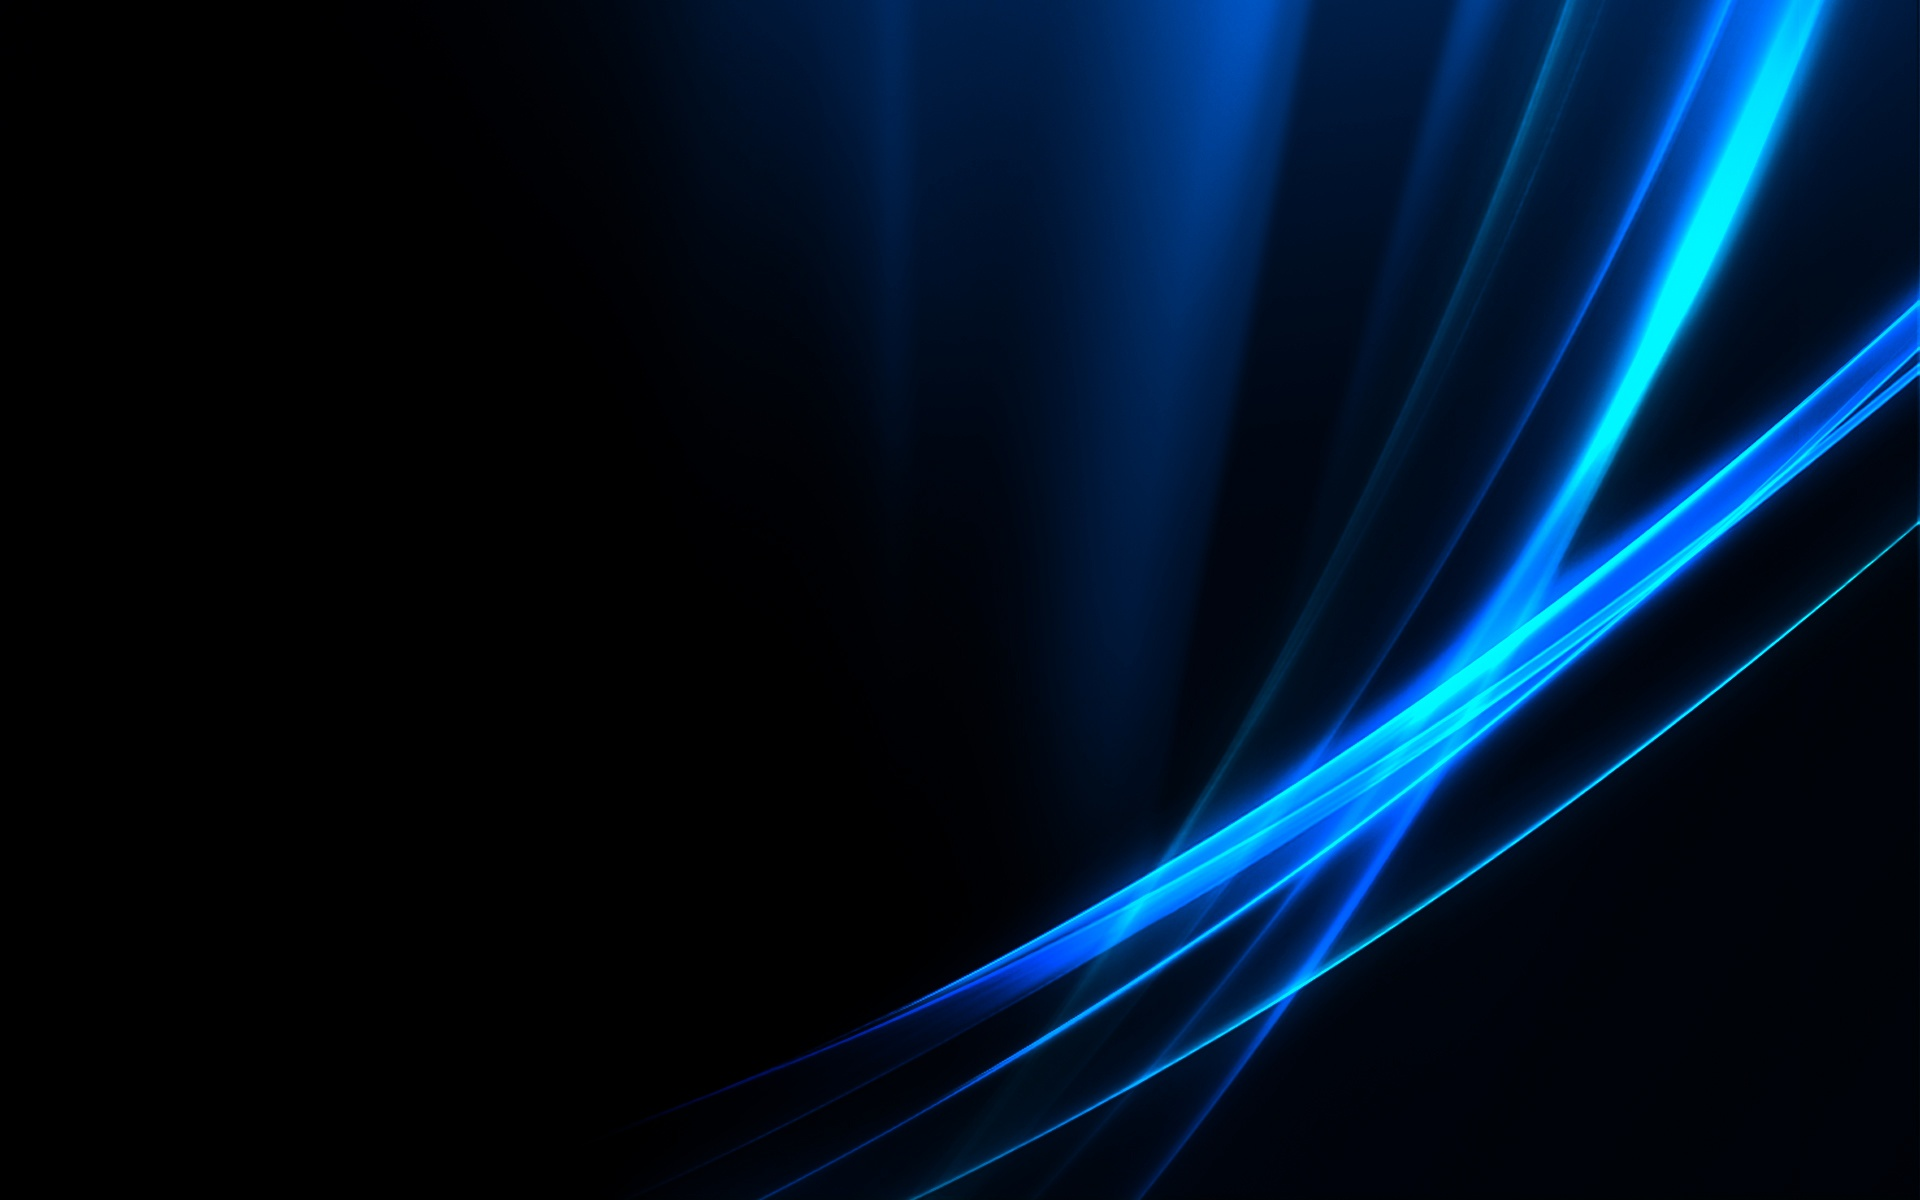 Blue Stripes   Cool Twitter Backgrounds 1920x1200